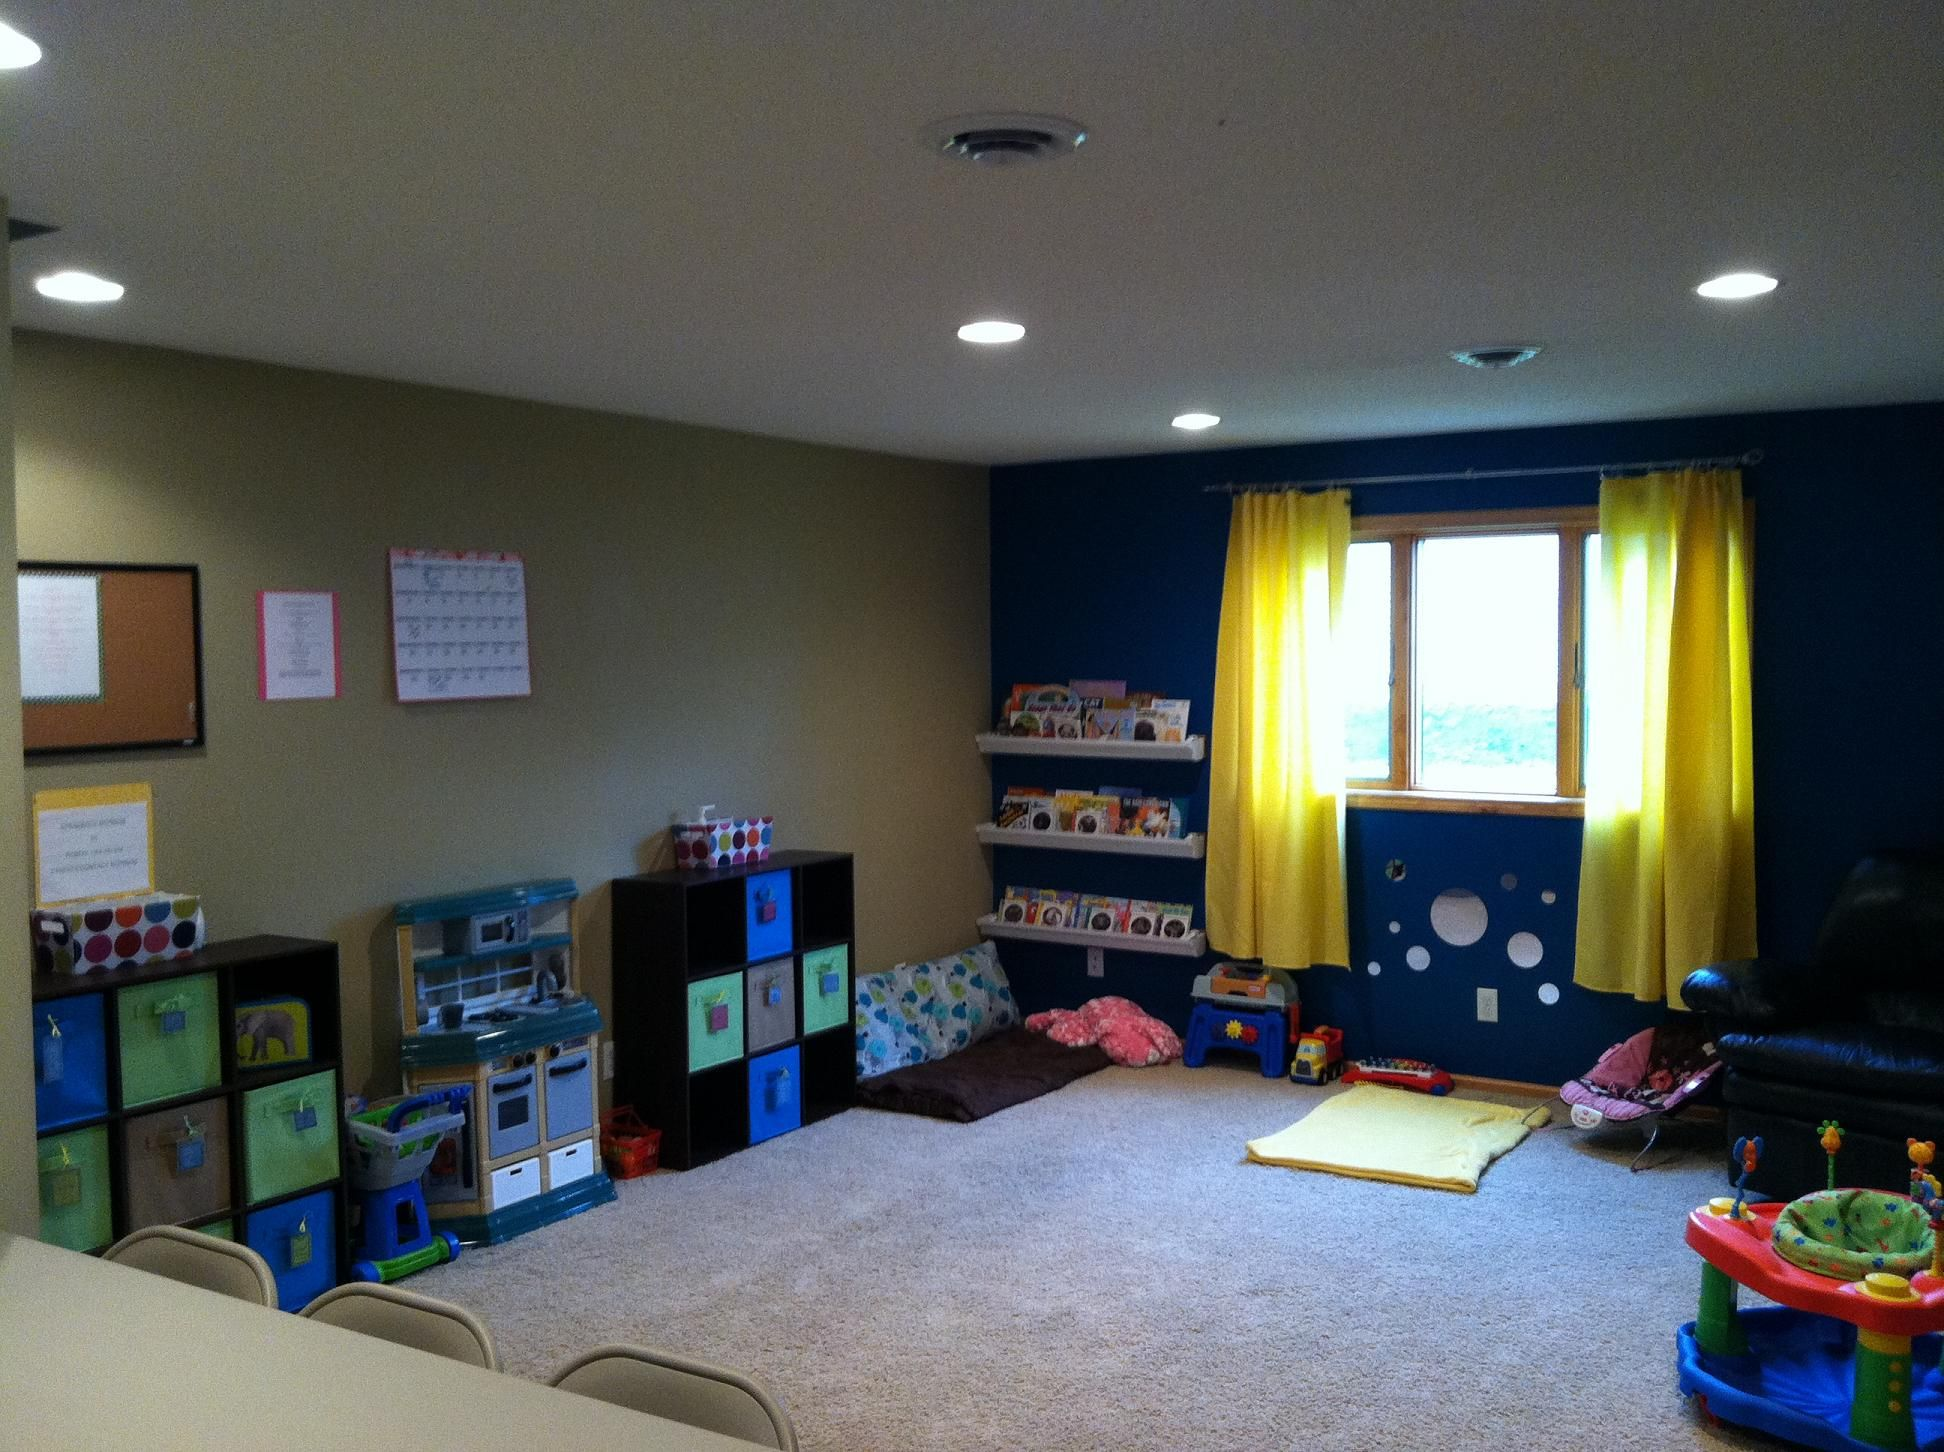 In home daycare layout 2 alissa 39 s day care center Dacare room designs